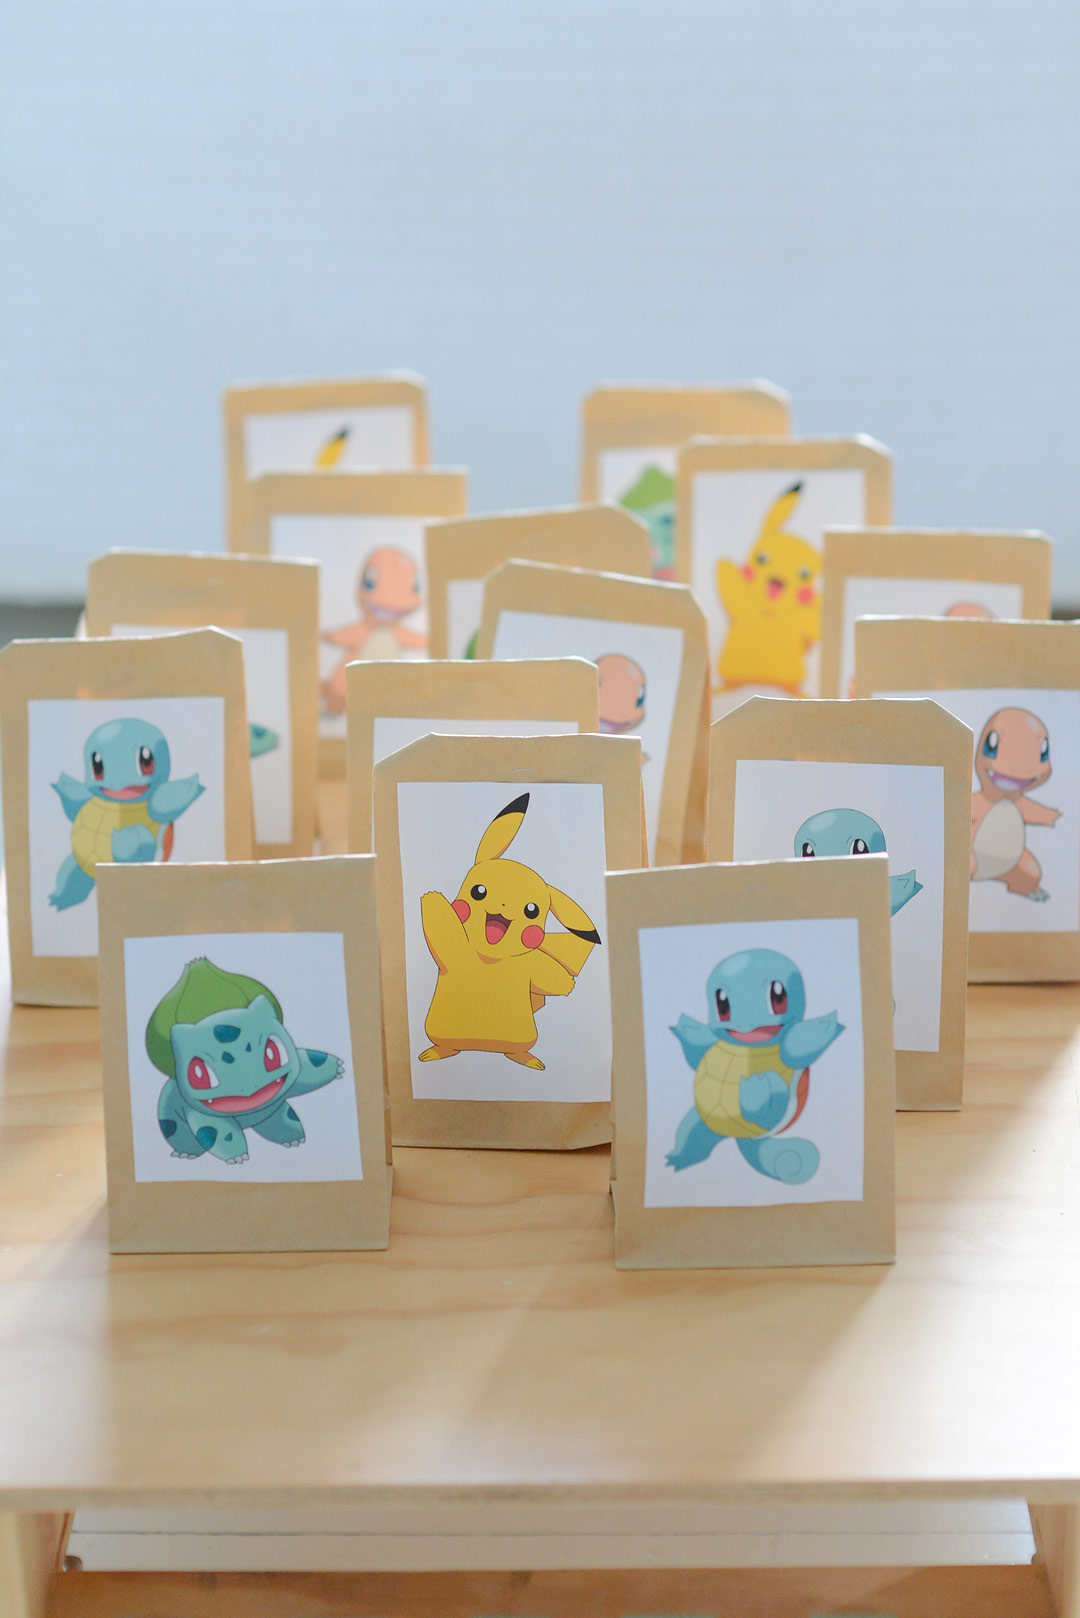 Pokemon birthday - Pikachu, Squirtle, Bulbasaur and Charmander surprise bags